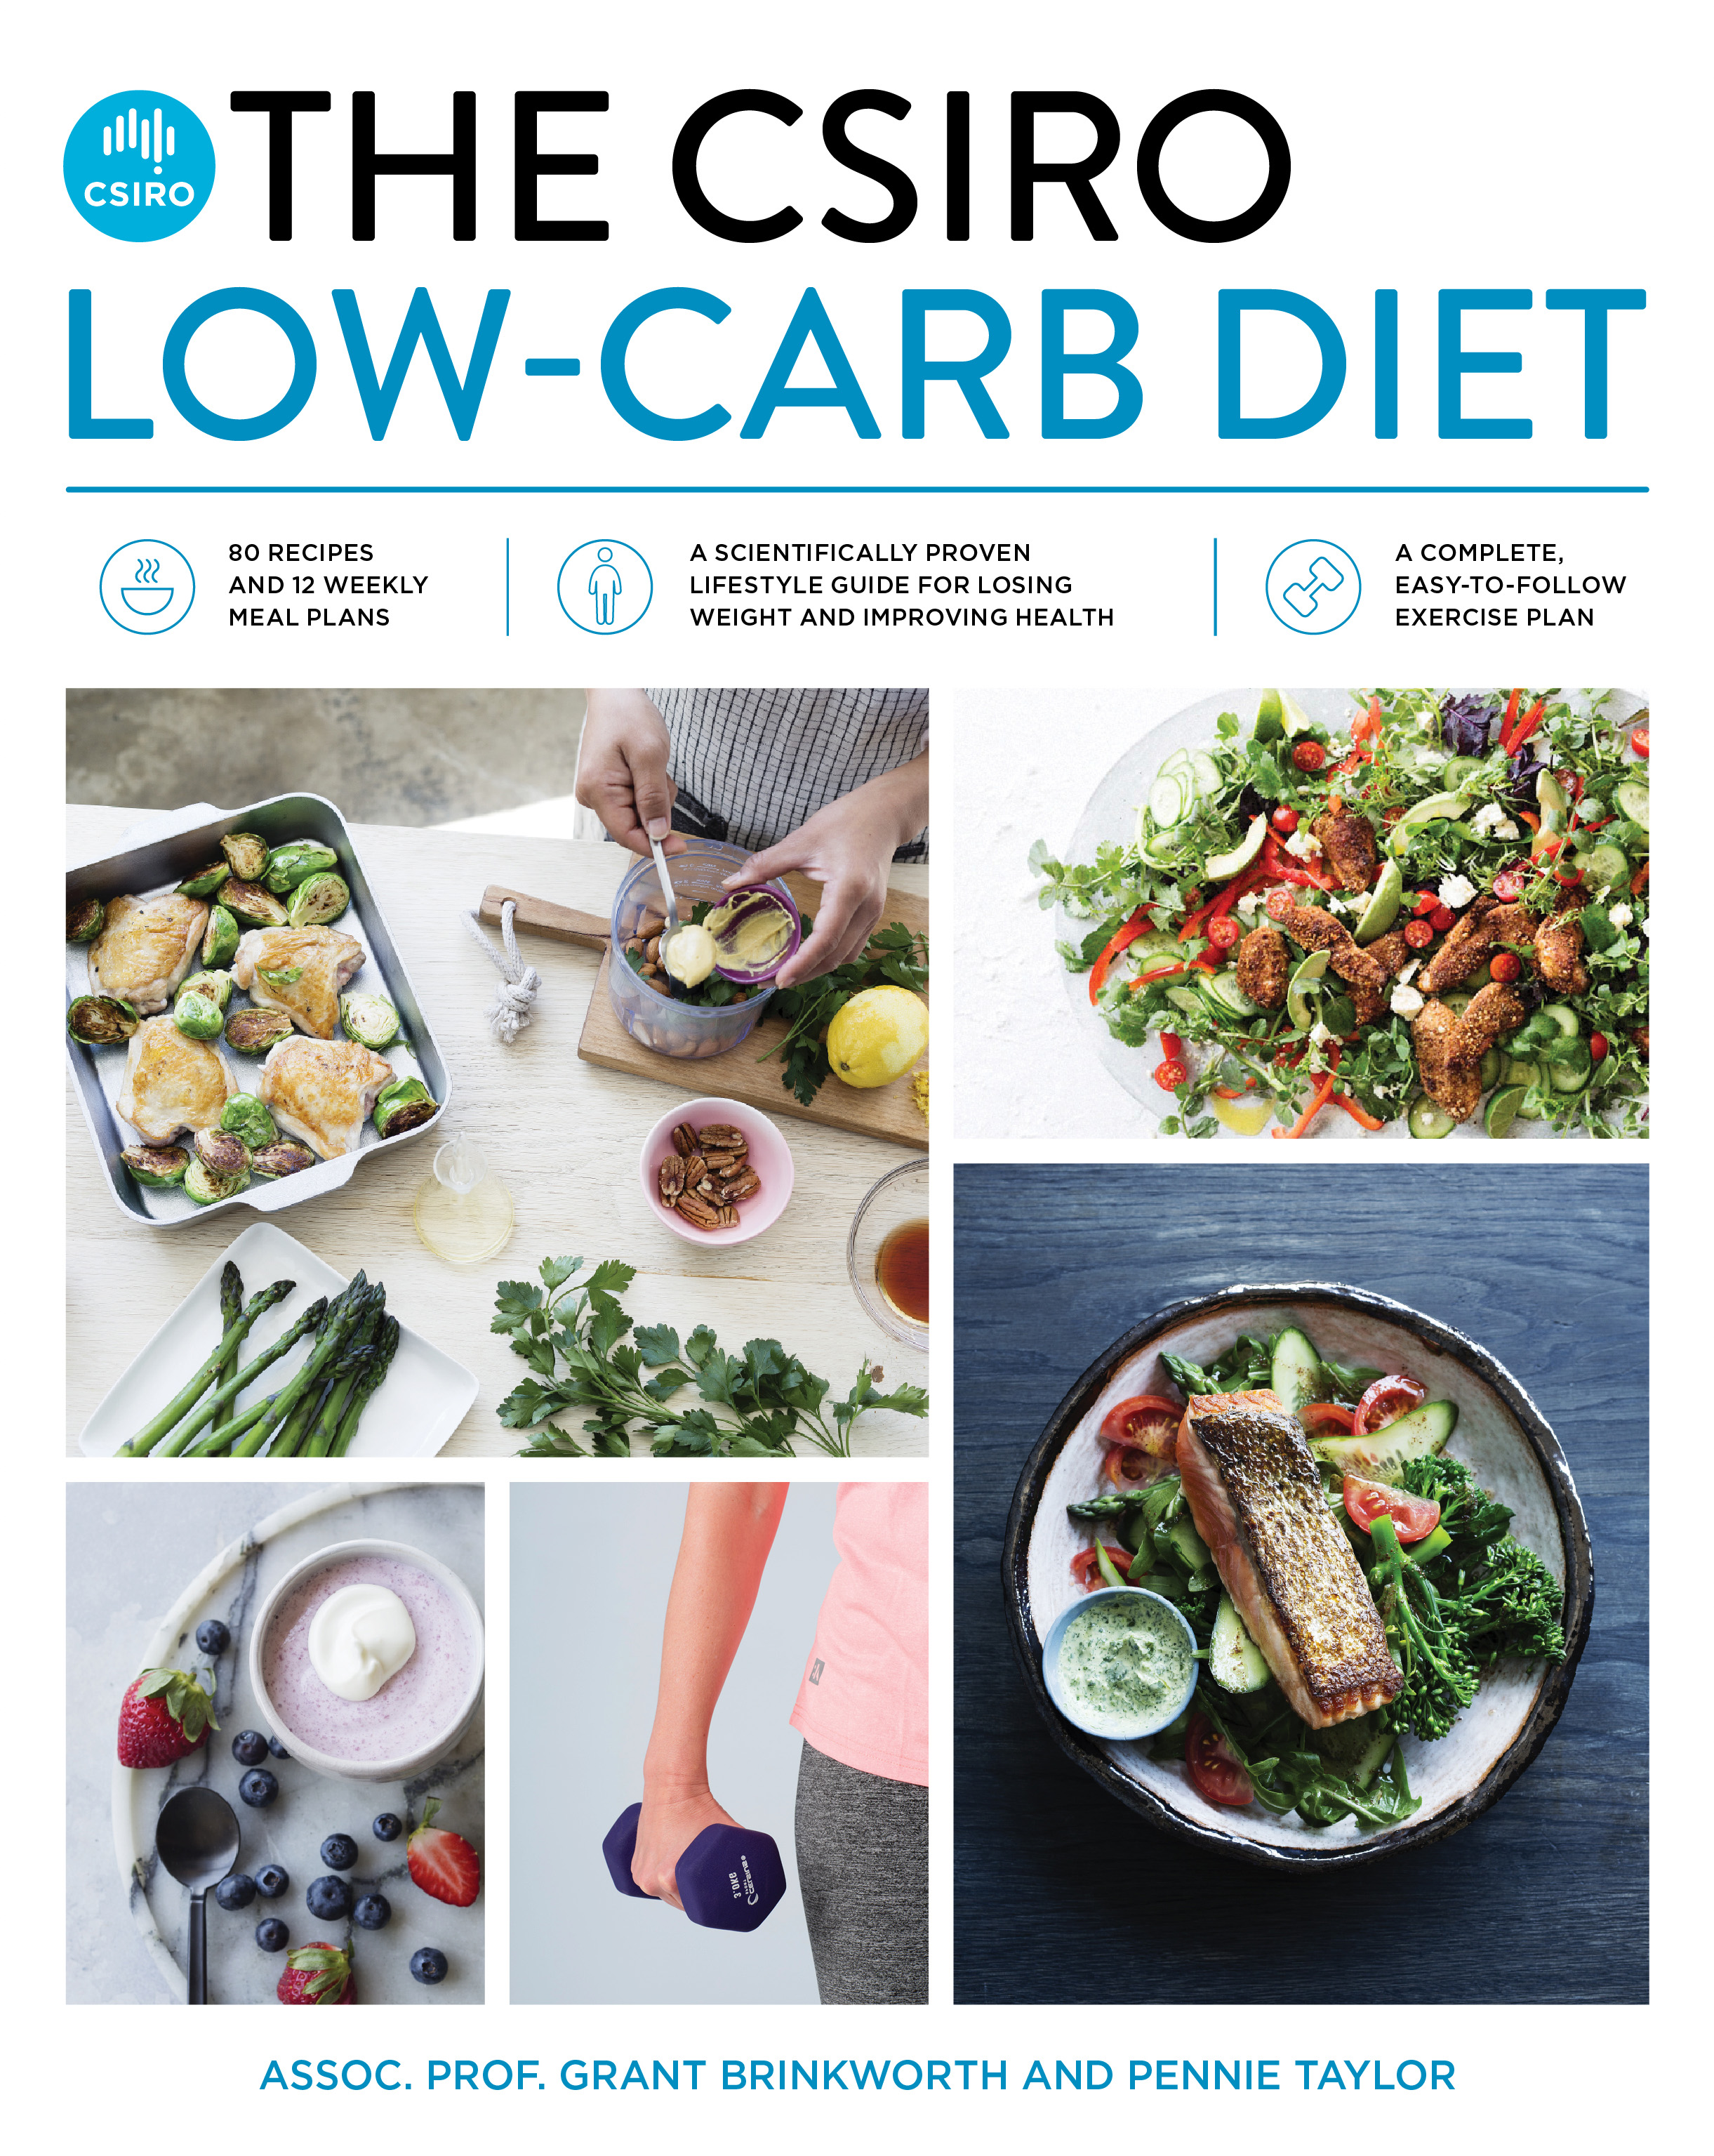 The CSIRO Low Carb Diet book cover